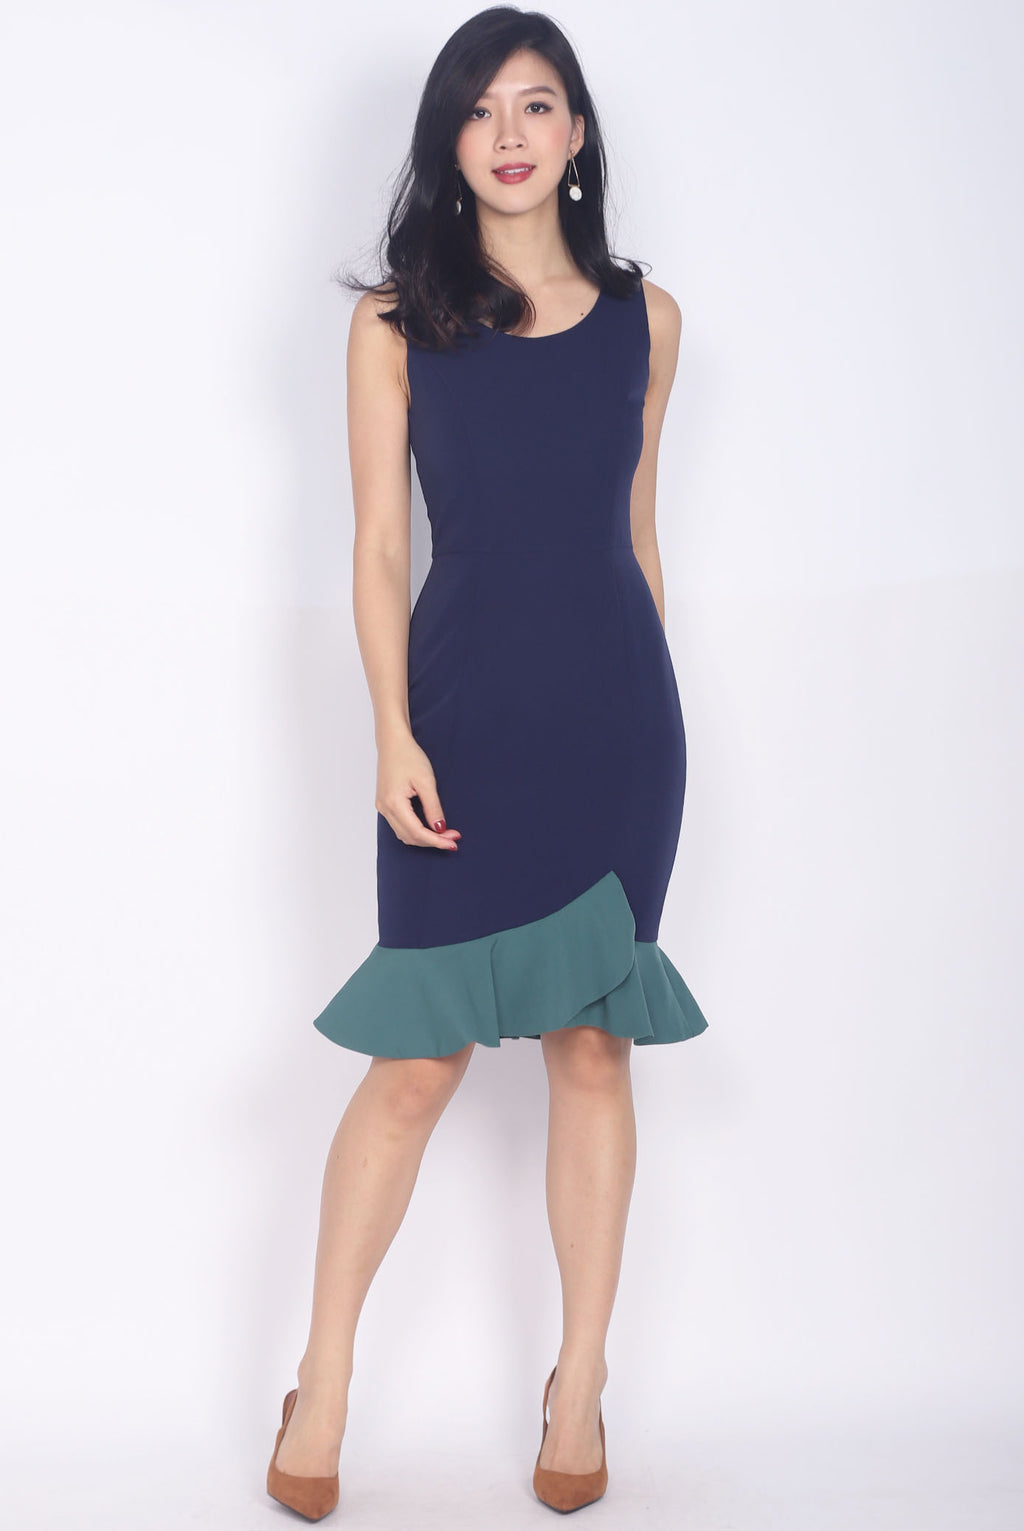 *Restock* Balthana Stacked Hem Mermaid Dress In Navy/Green